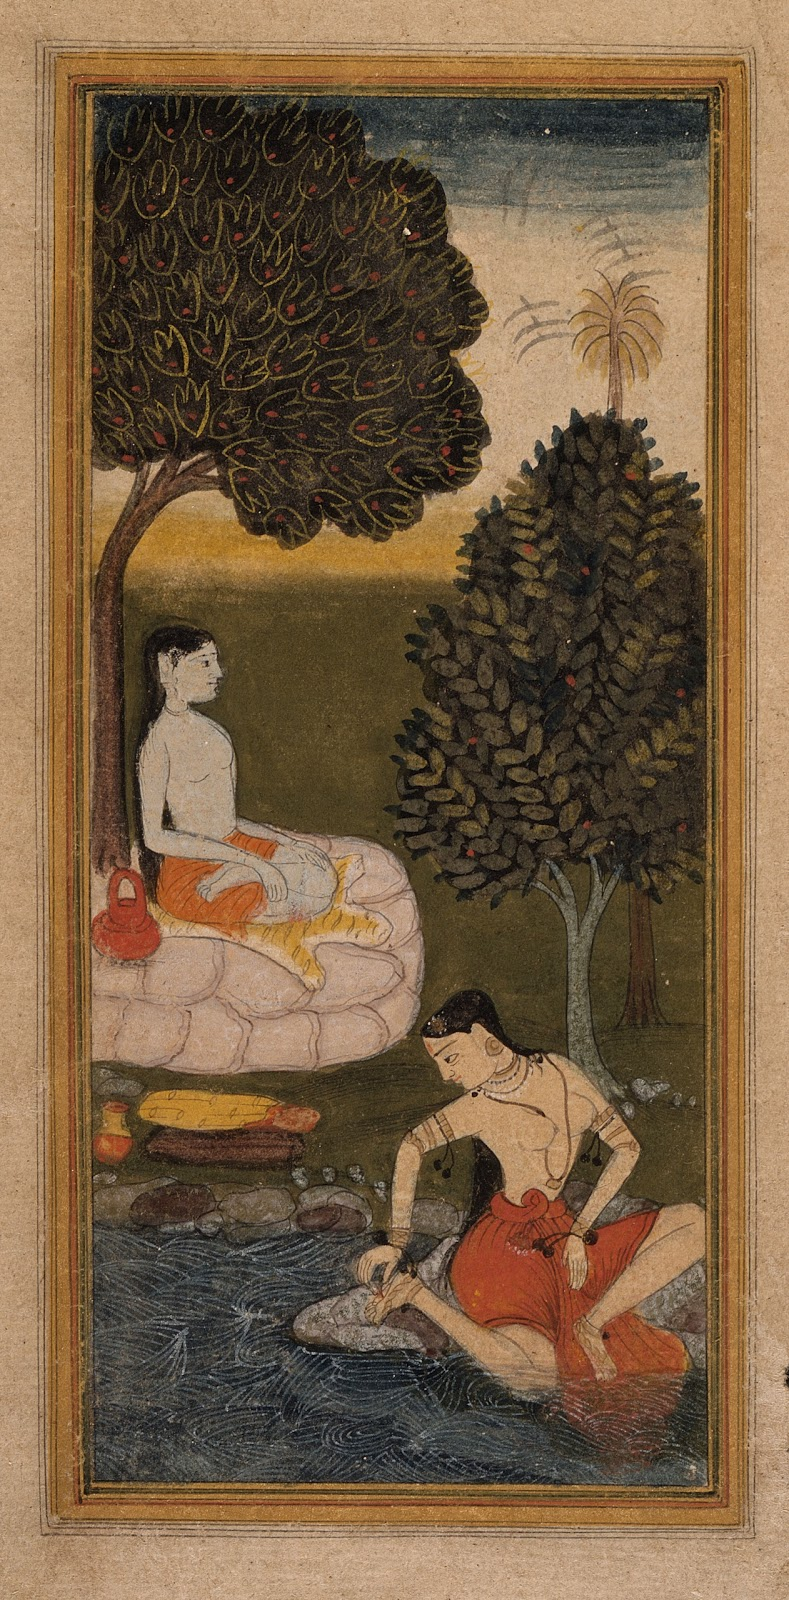 An Ascetic Sitting under a Tree and a Woman Plucking a Thorn from her Foot, Folio from a Sukra Rambha Samvada  - Mughal Painting, Early 17th Century